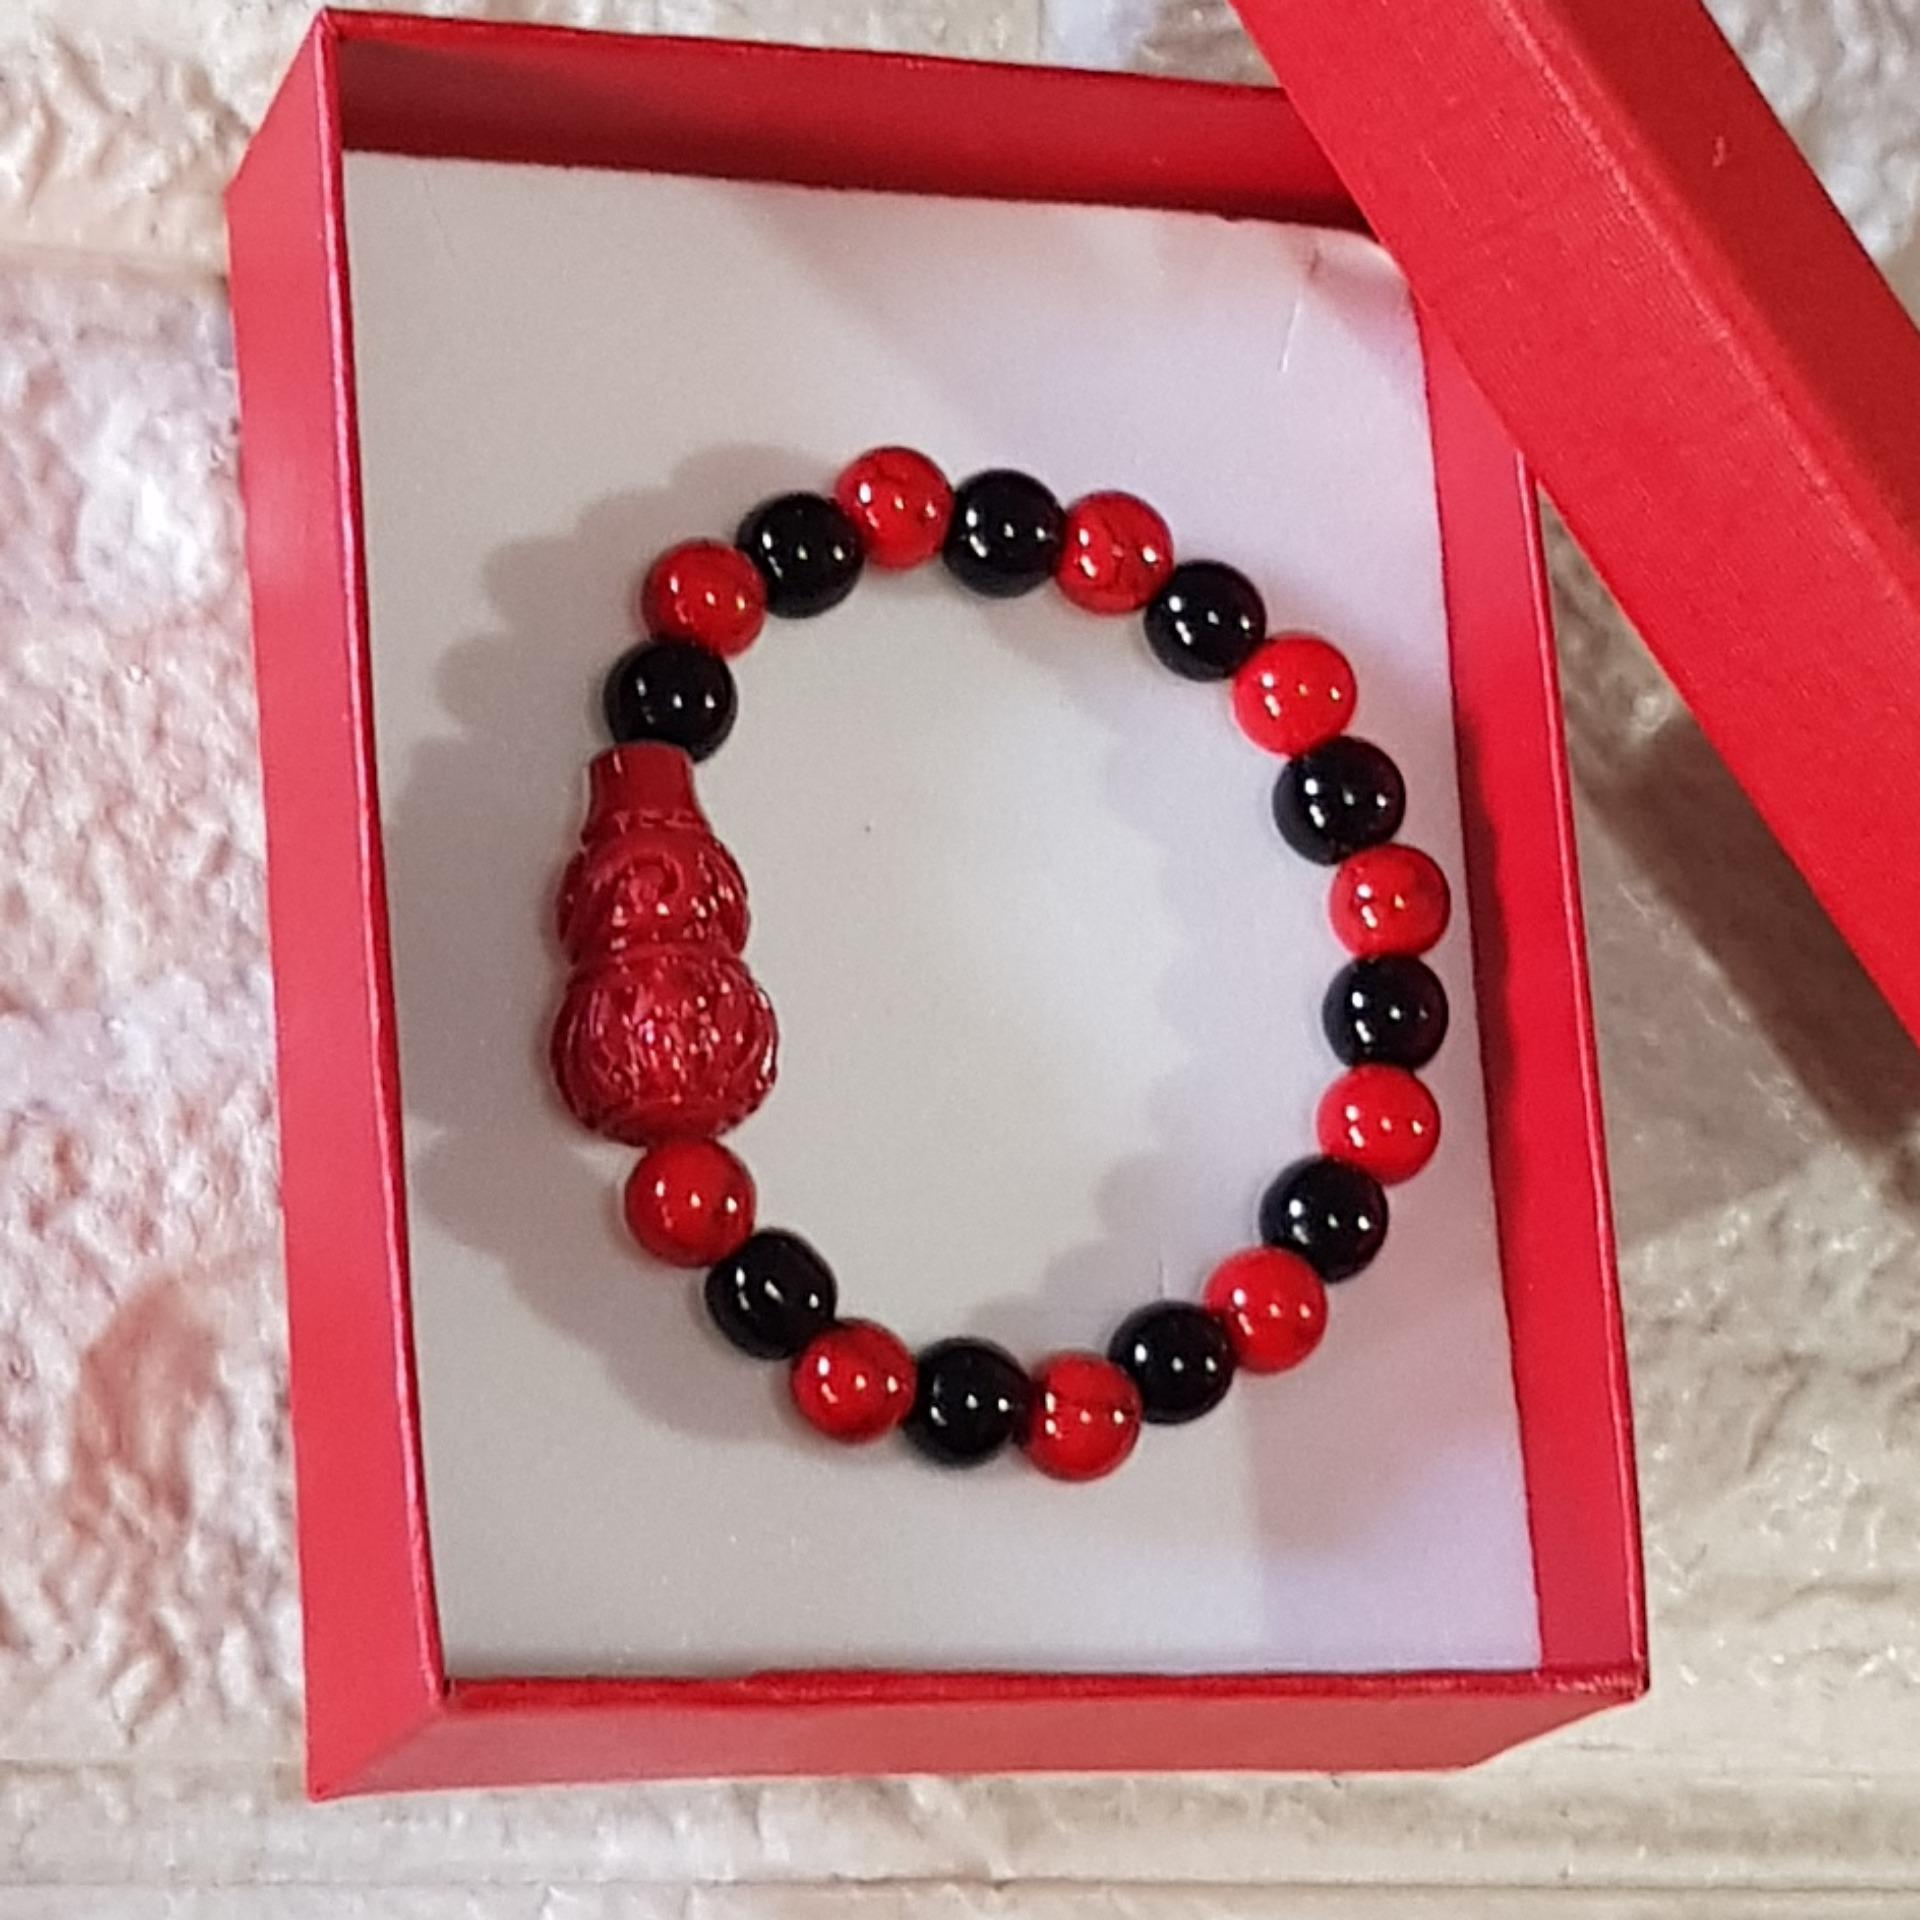 ad9e62db1 Lucky Charm Money JAR Anti Usog bracelet for Baby and Kids unisex design  With Free Pouch